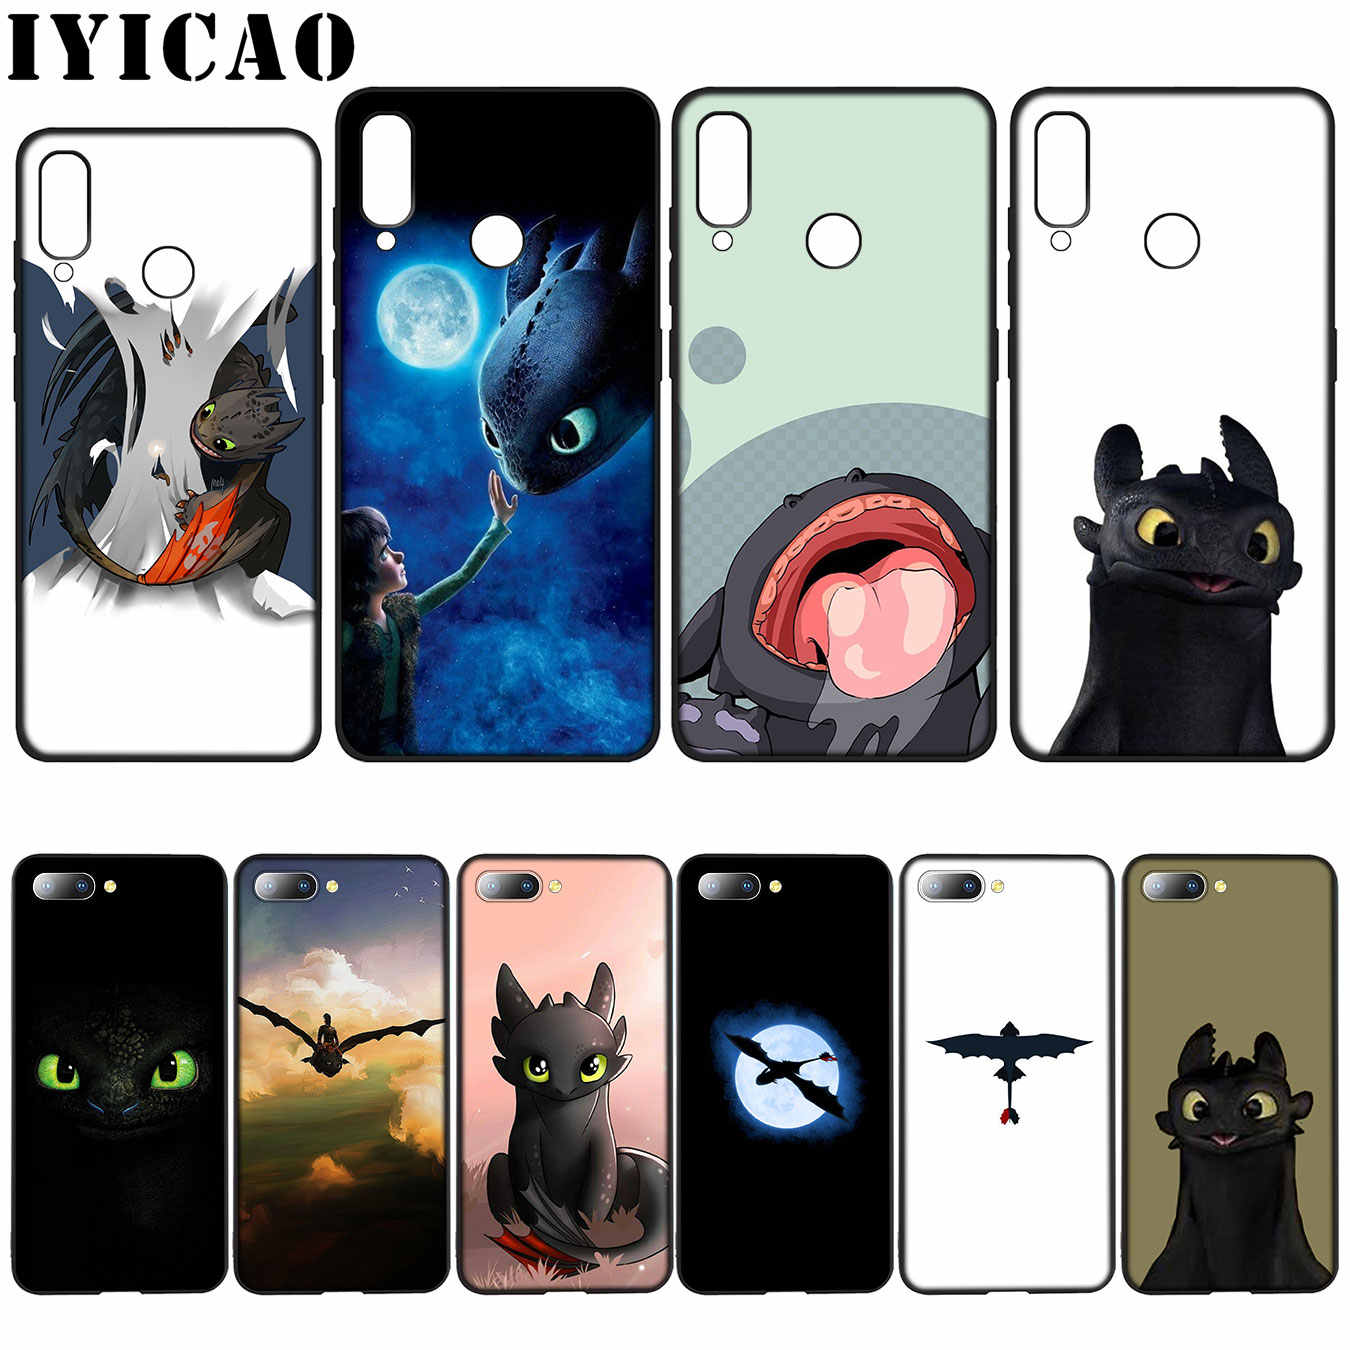 IYICAO sdentato How To Train Your Dragon Custodia Morbida per Huawei Y7 Y6 Prime Y9 2018 Honor 8C 8X8 9 10 Lite 6A 7C 7X 7A Pro